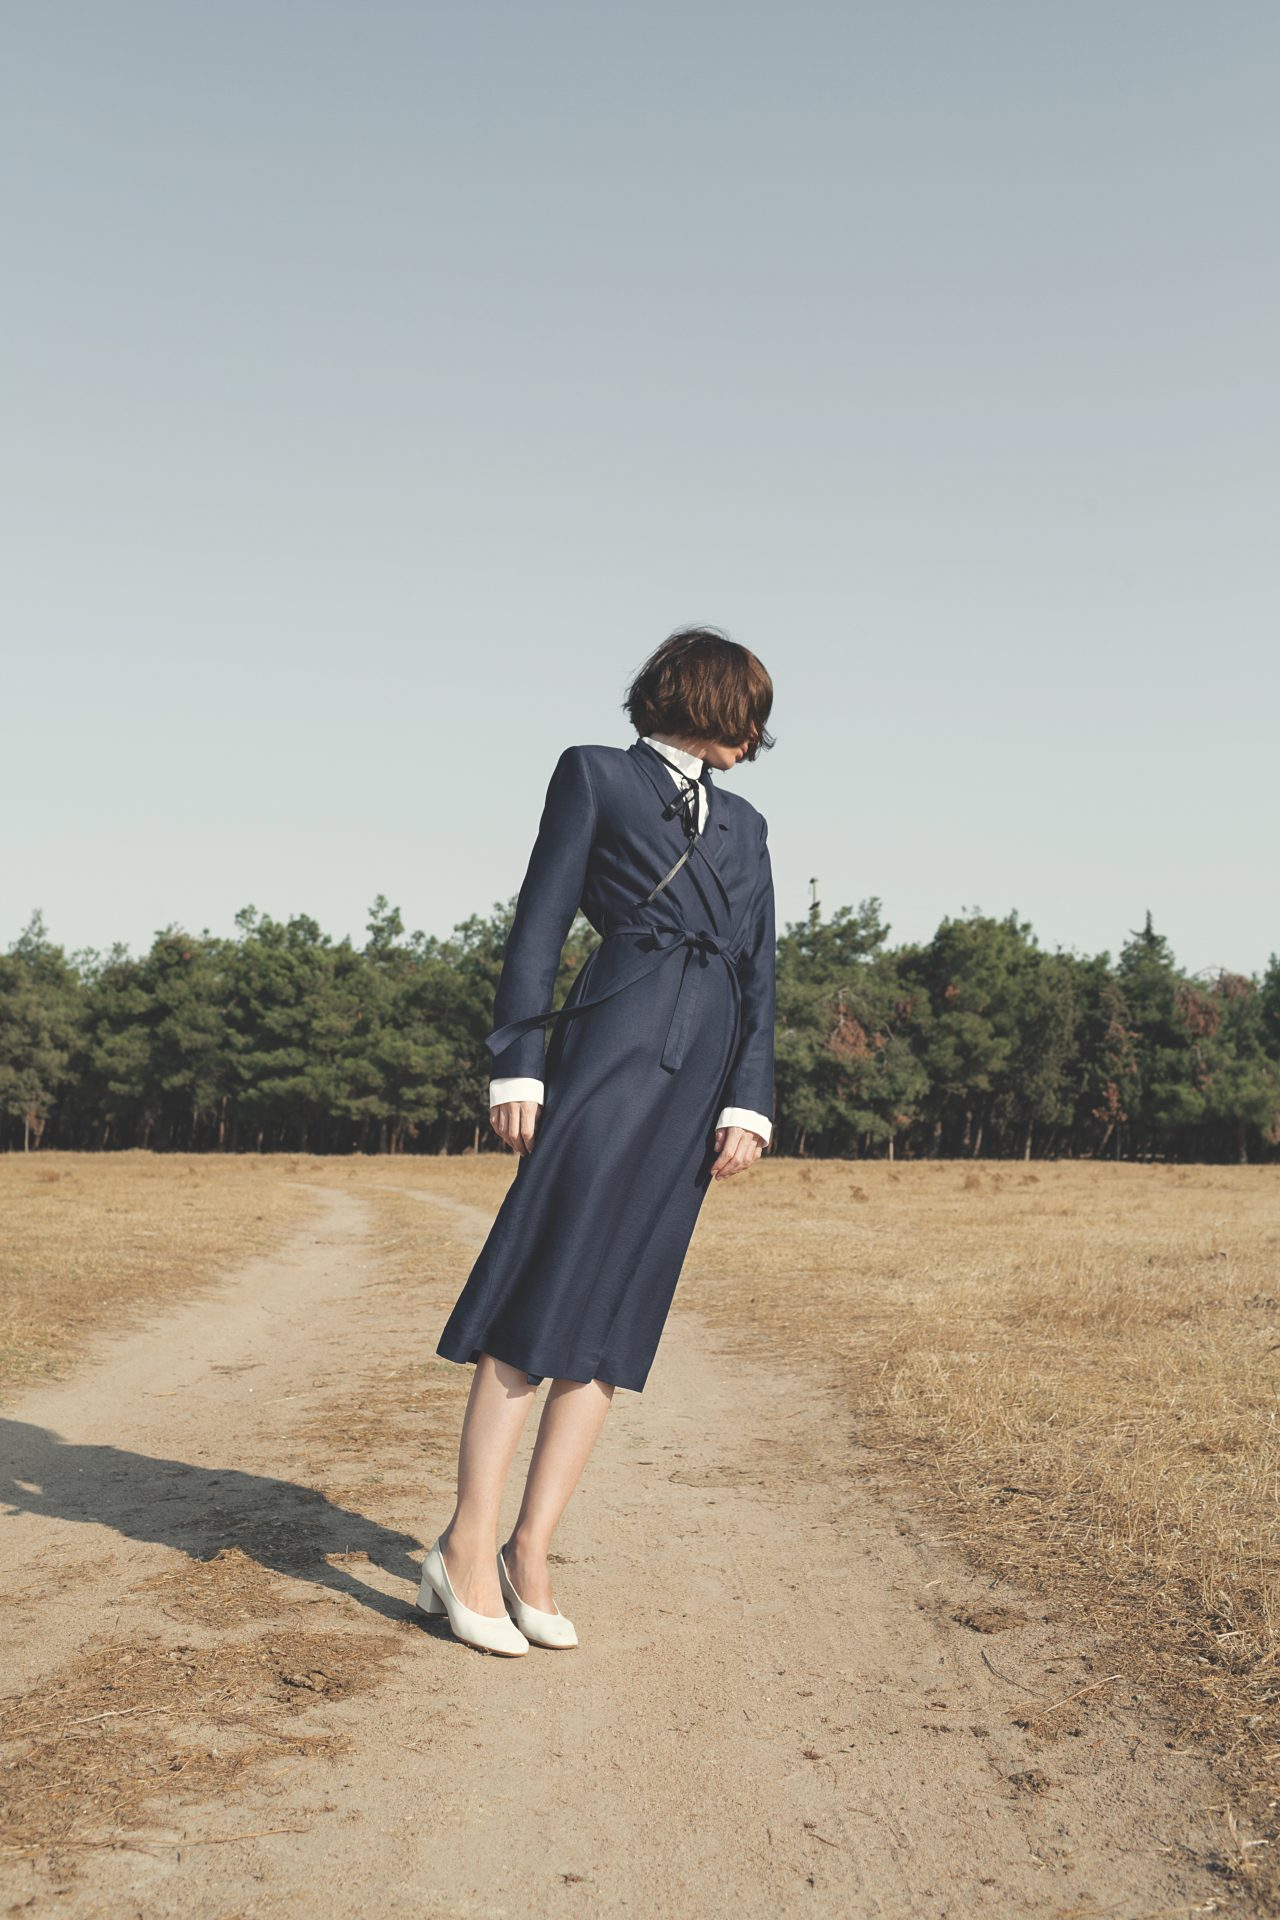 Emotional Affair-A Woman In A Blue Coat stands on a dirt road looking away from the camera